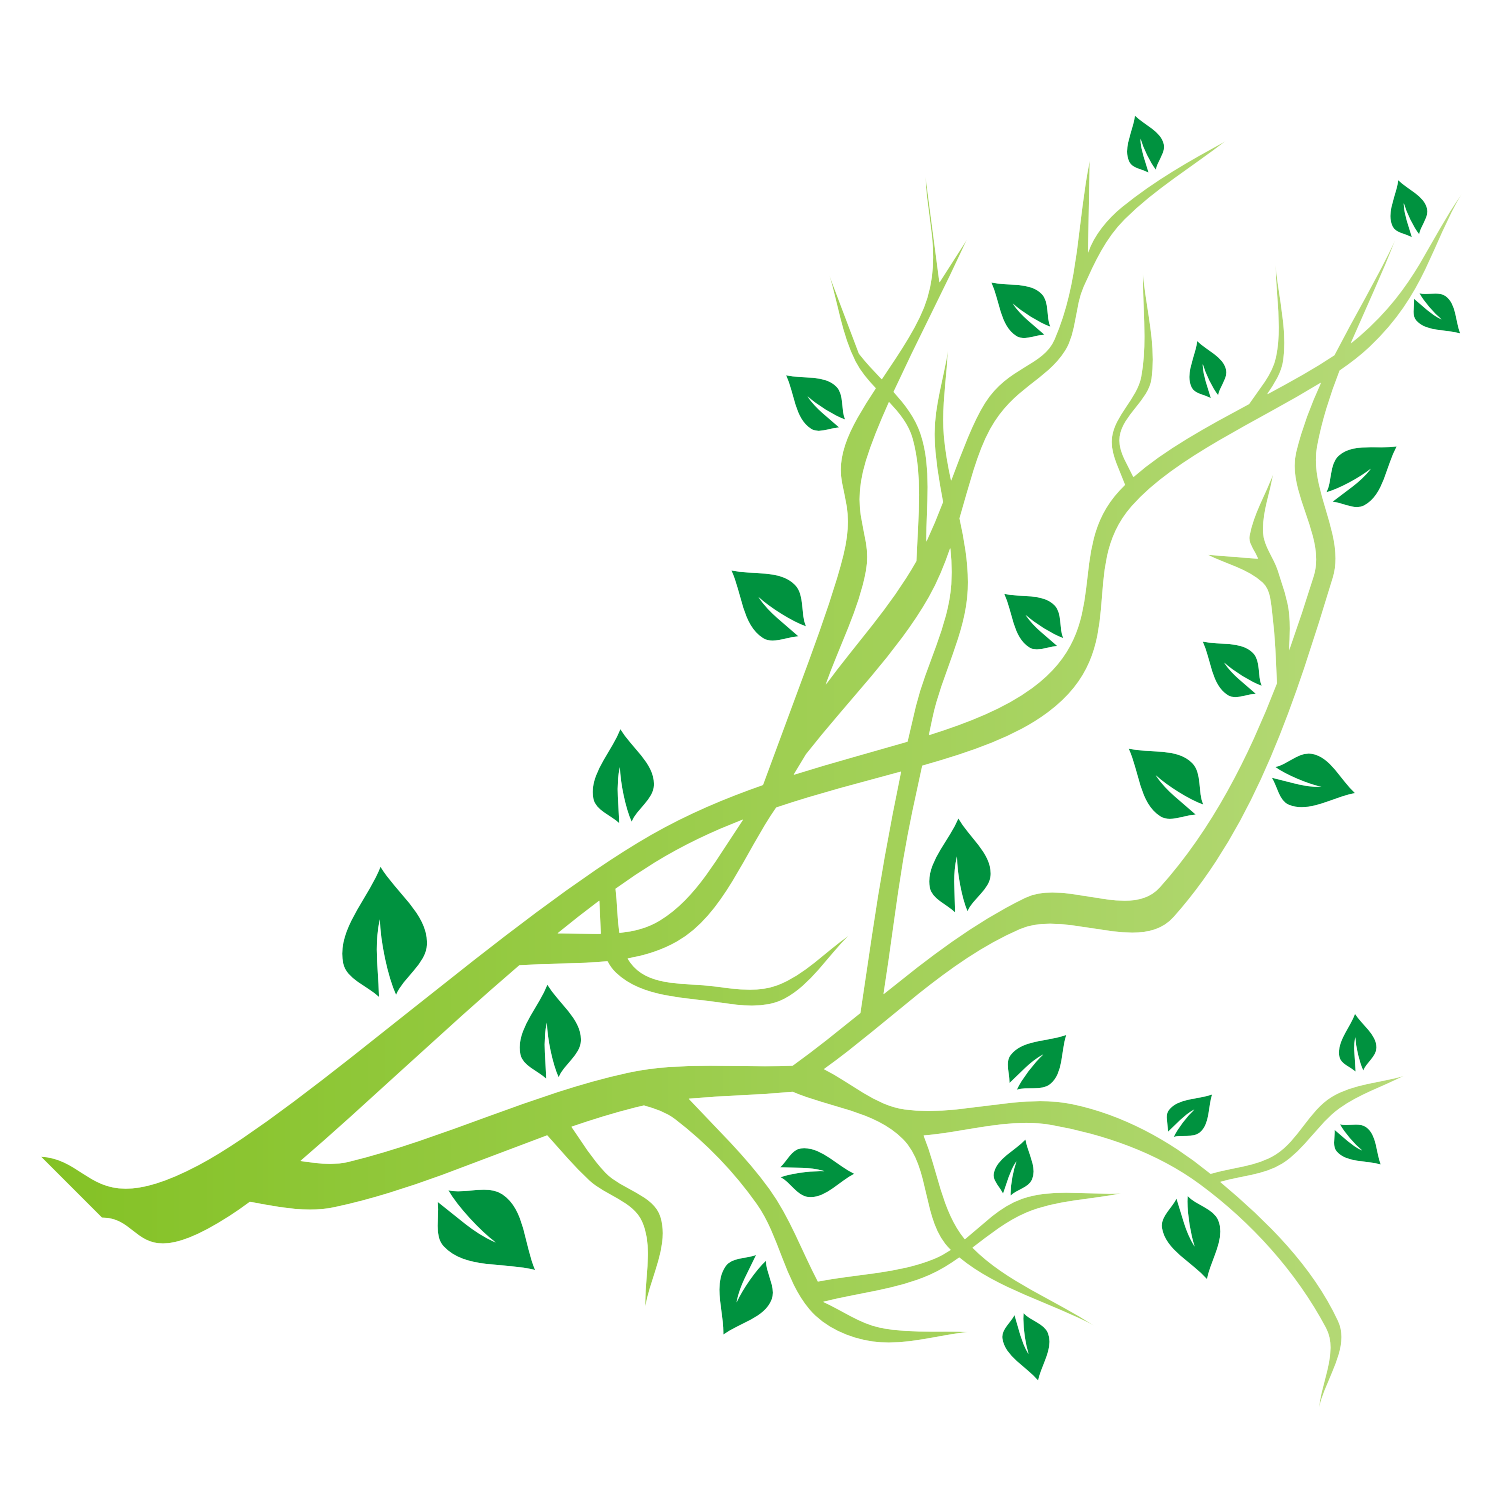 Tree branch vector | Trees | Cartoon trees, Tree branches ...